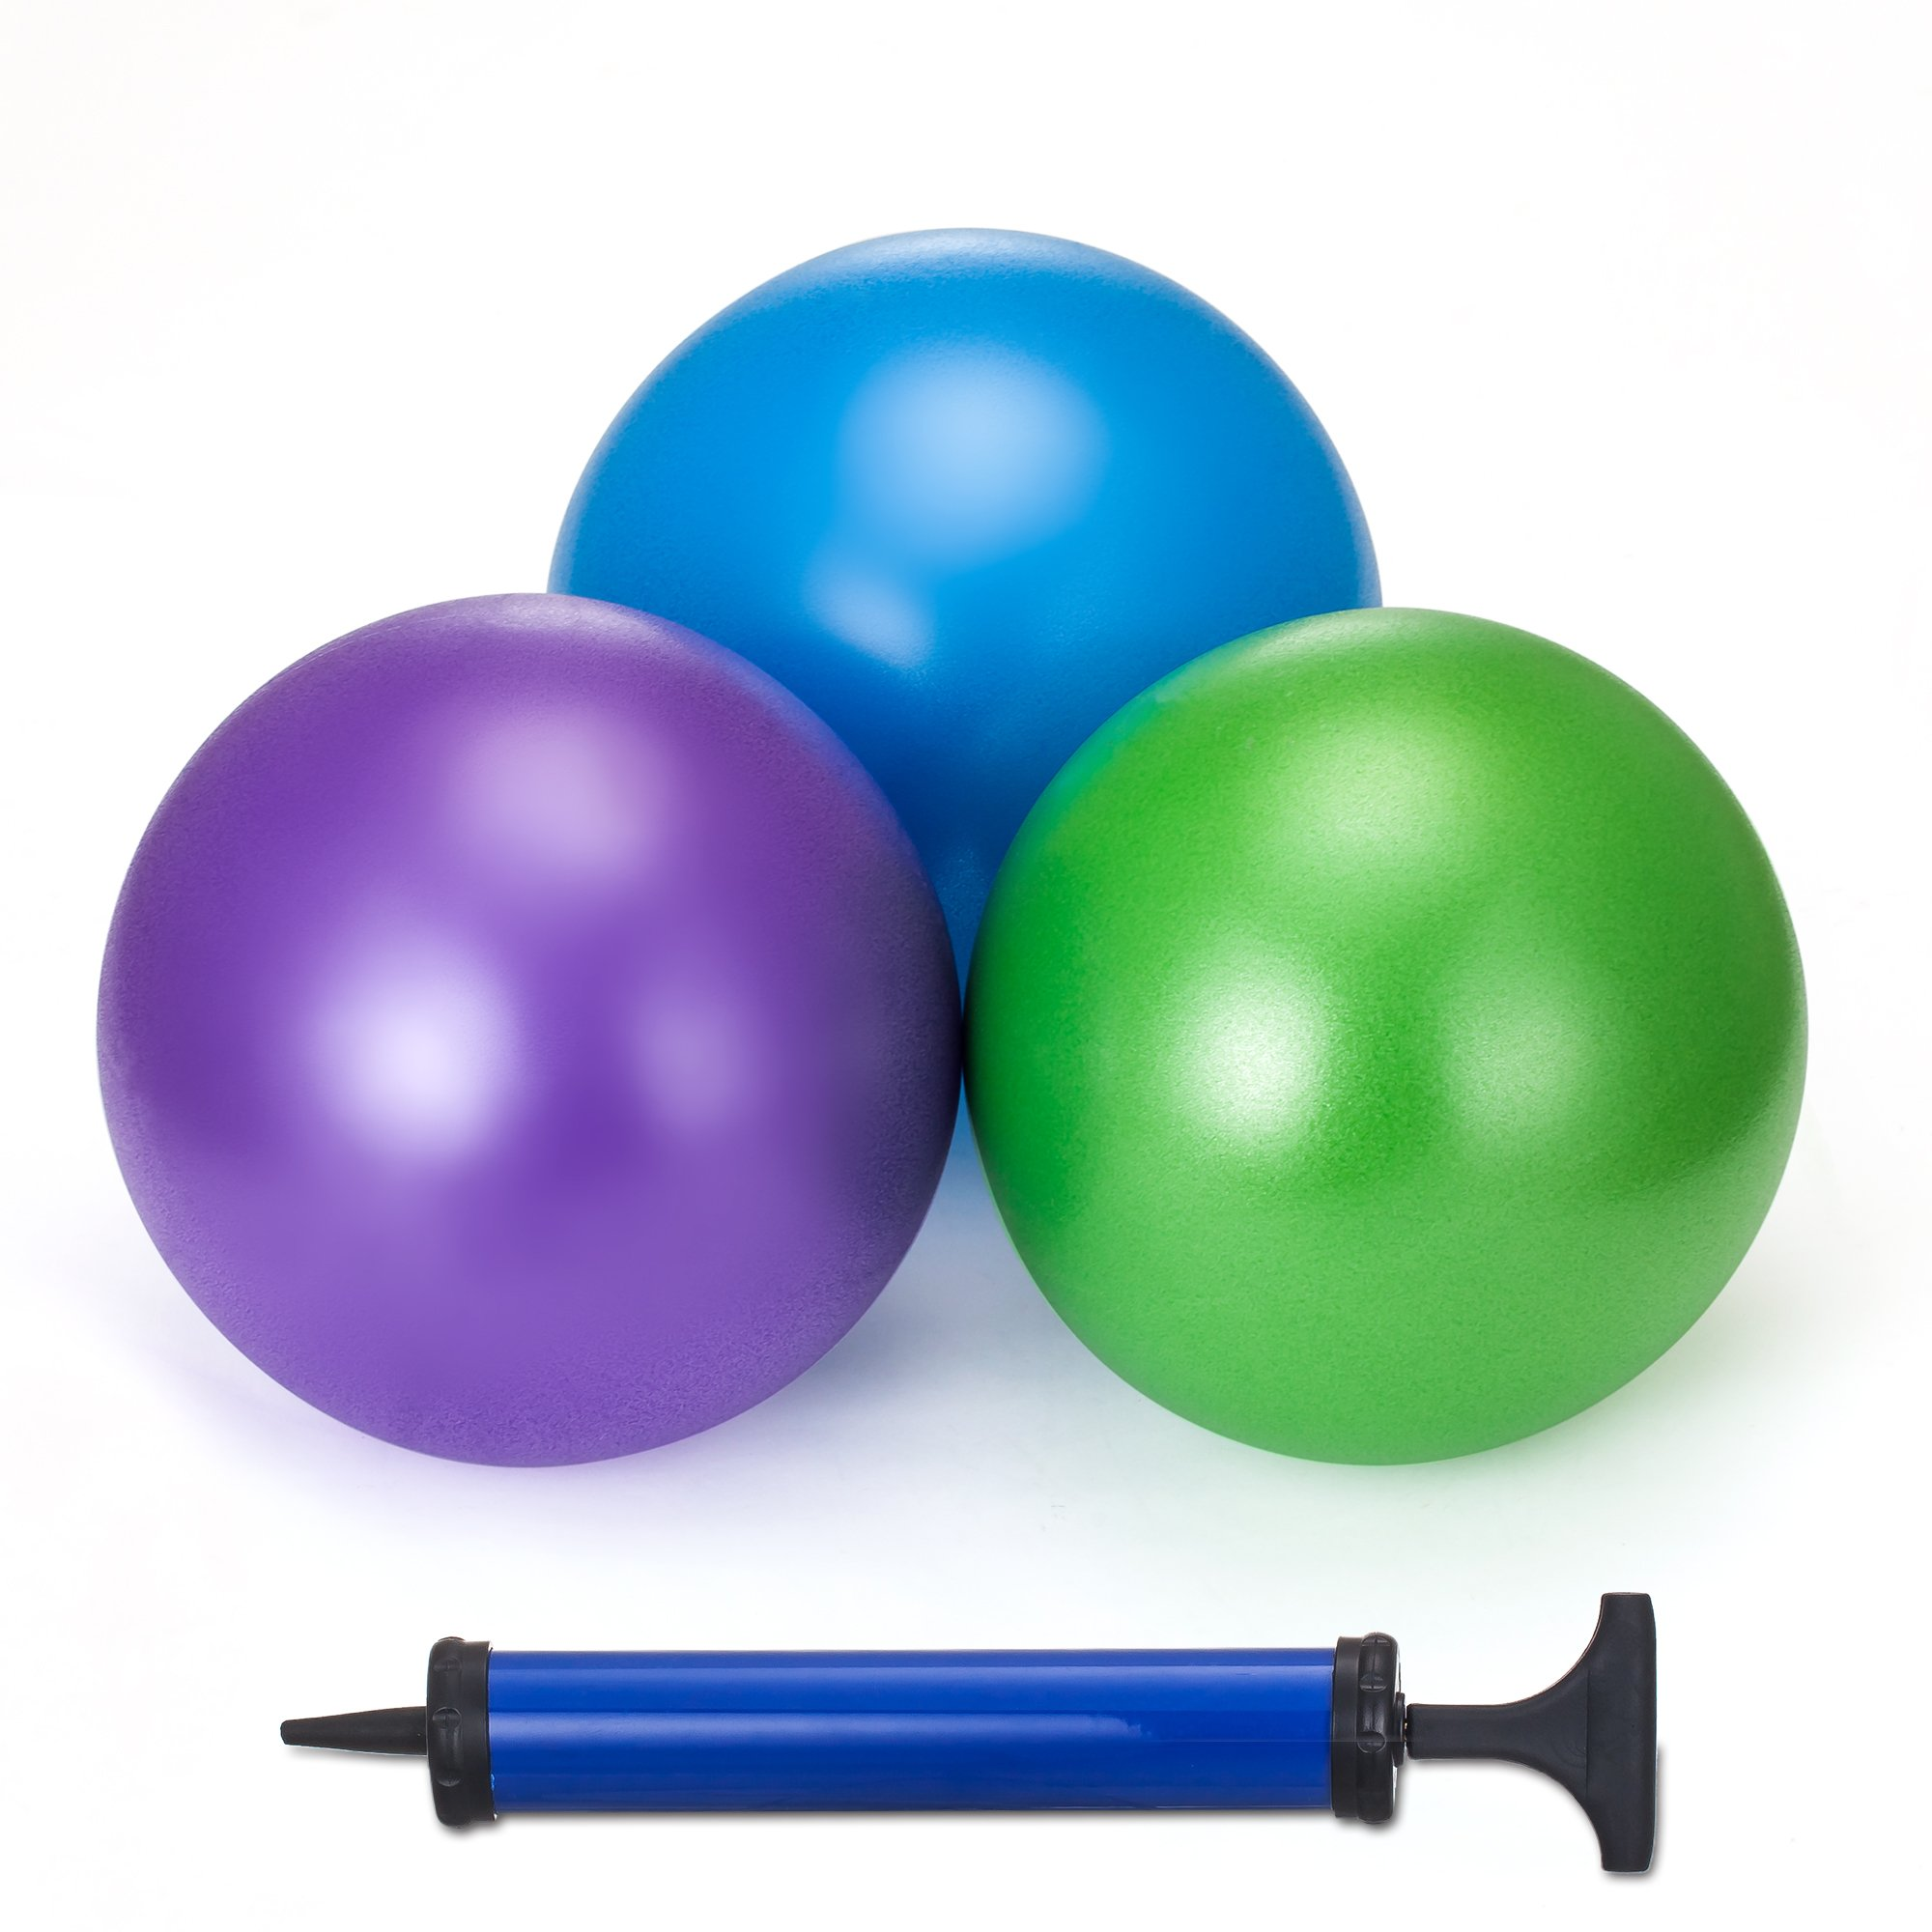 9.8Inch Beach Balls Inflatable Beach Pool Party Toys for Adults and Kids Water Fun Play in Summer (3 Pack) (Purple+Green+Blue)